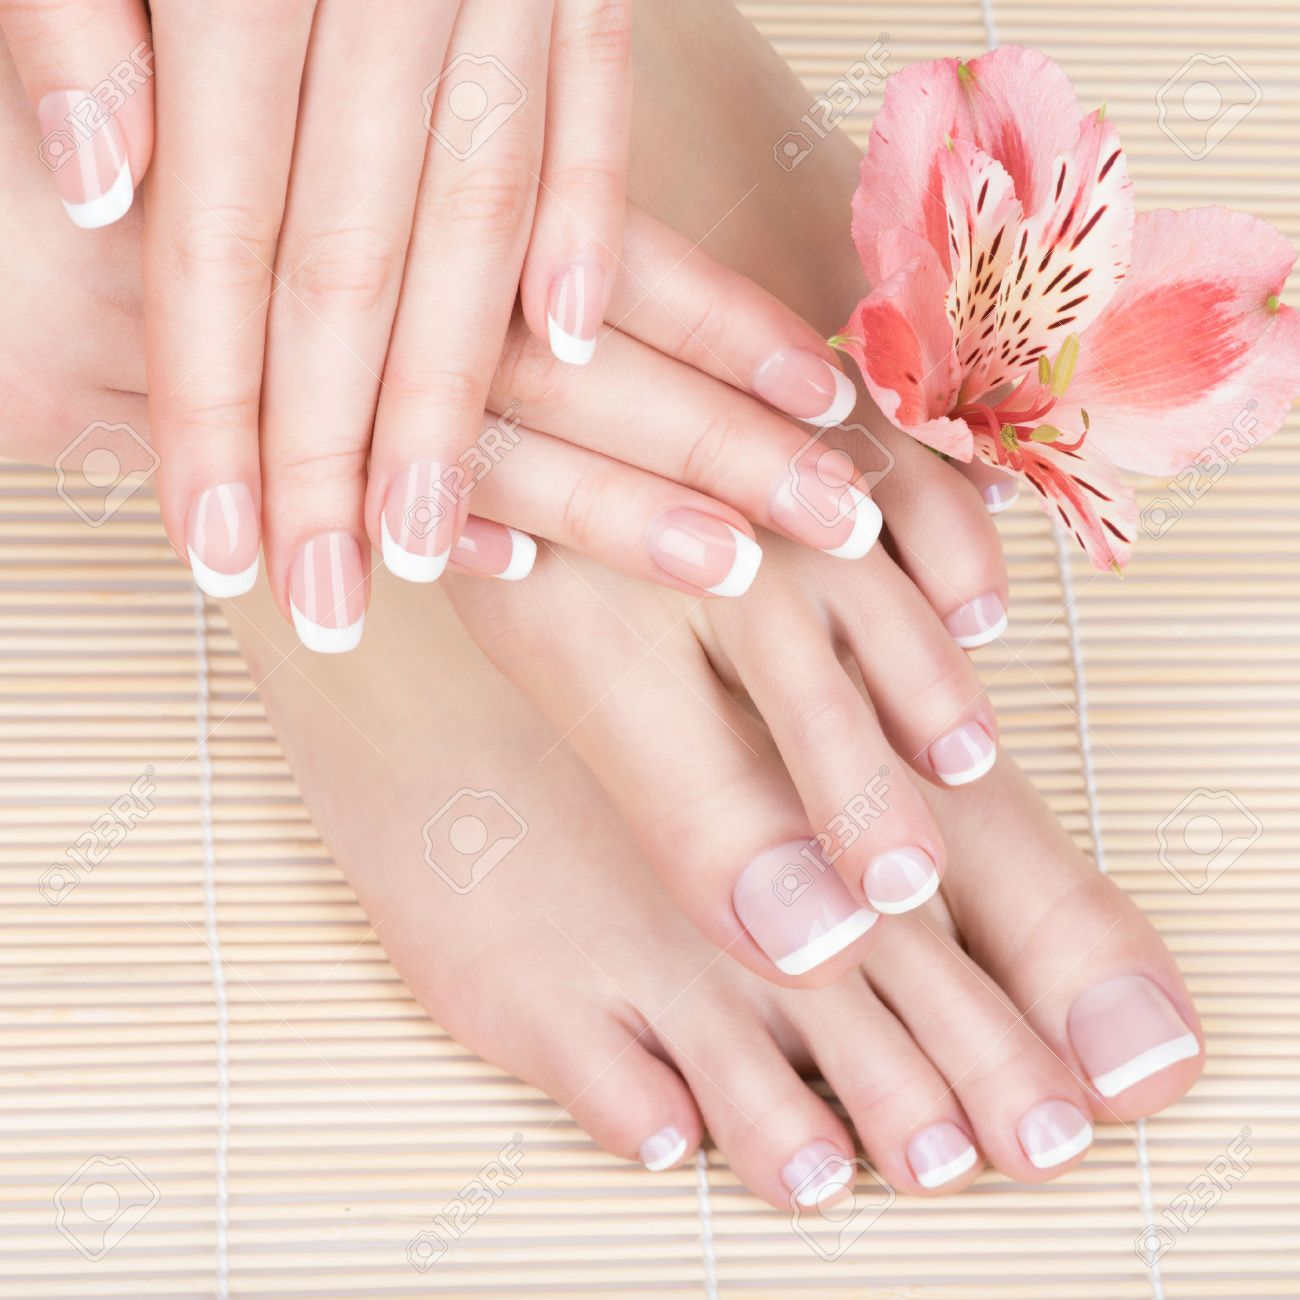 Closeup photo of a female feet at spa salon on pedicure and manicure procedure - Soft focus image Banque d'images - 54100873